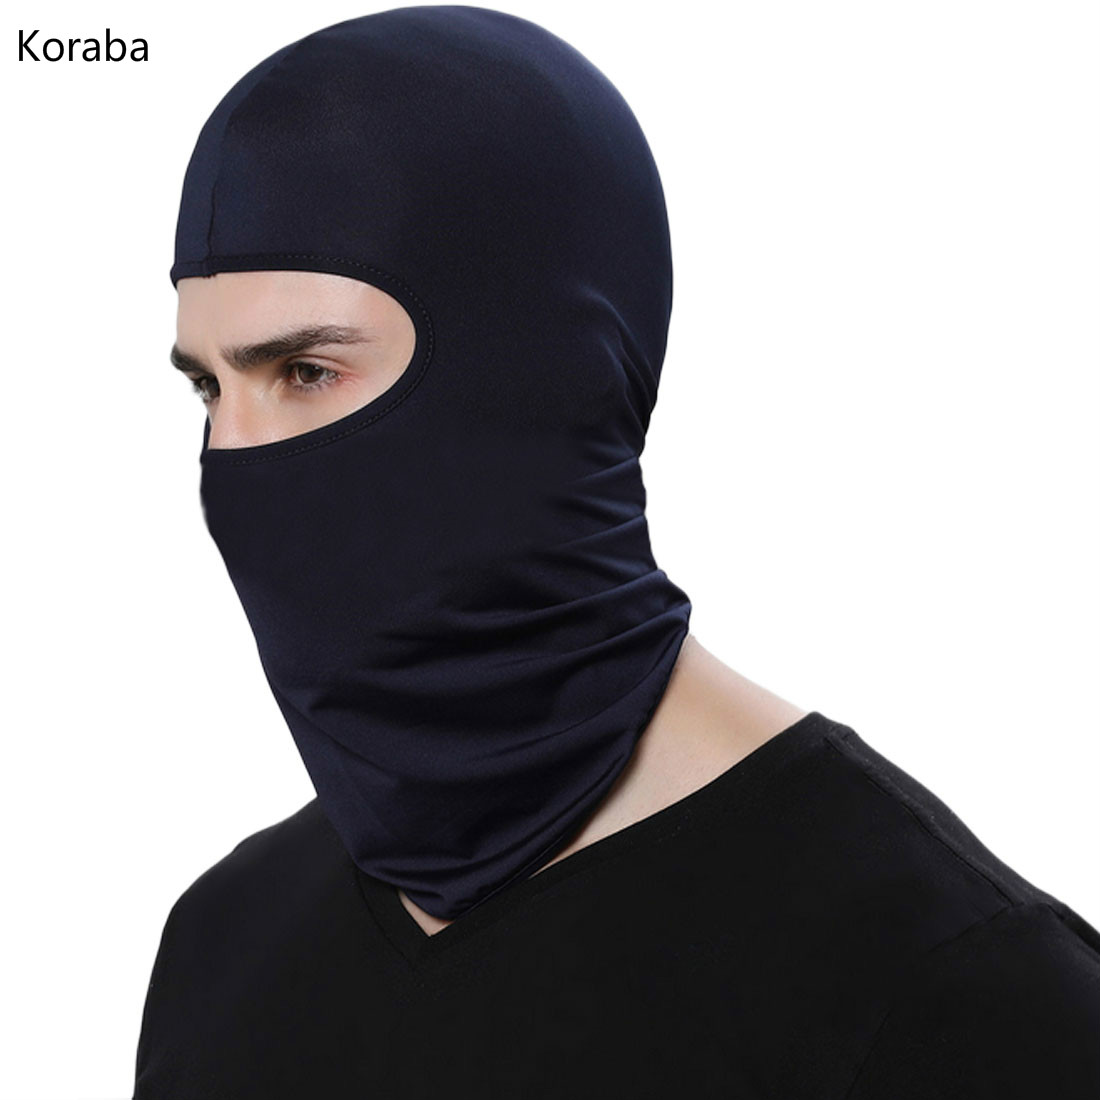 Hot Selling Motorcycle Face Mask Cycling Ski Neck Protecting Outdoor Balaclava Full Face Mask Ultra Thin Breathable Windproof 2017 balaclava windproof full face neck guard headgear hats beanies for men women riding casual ski cycling masks b3